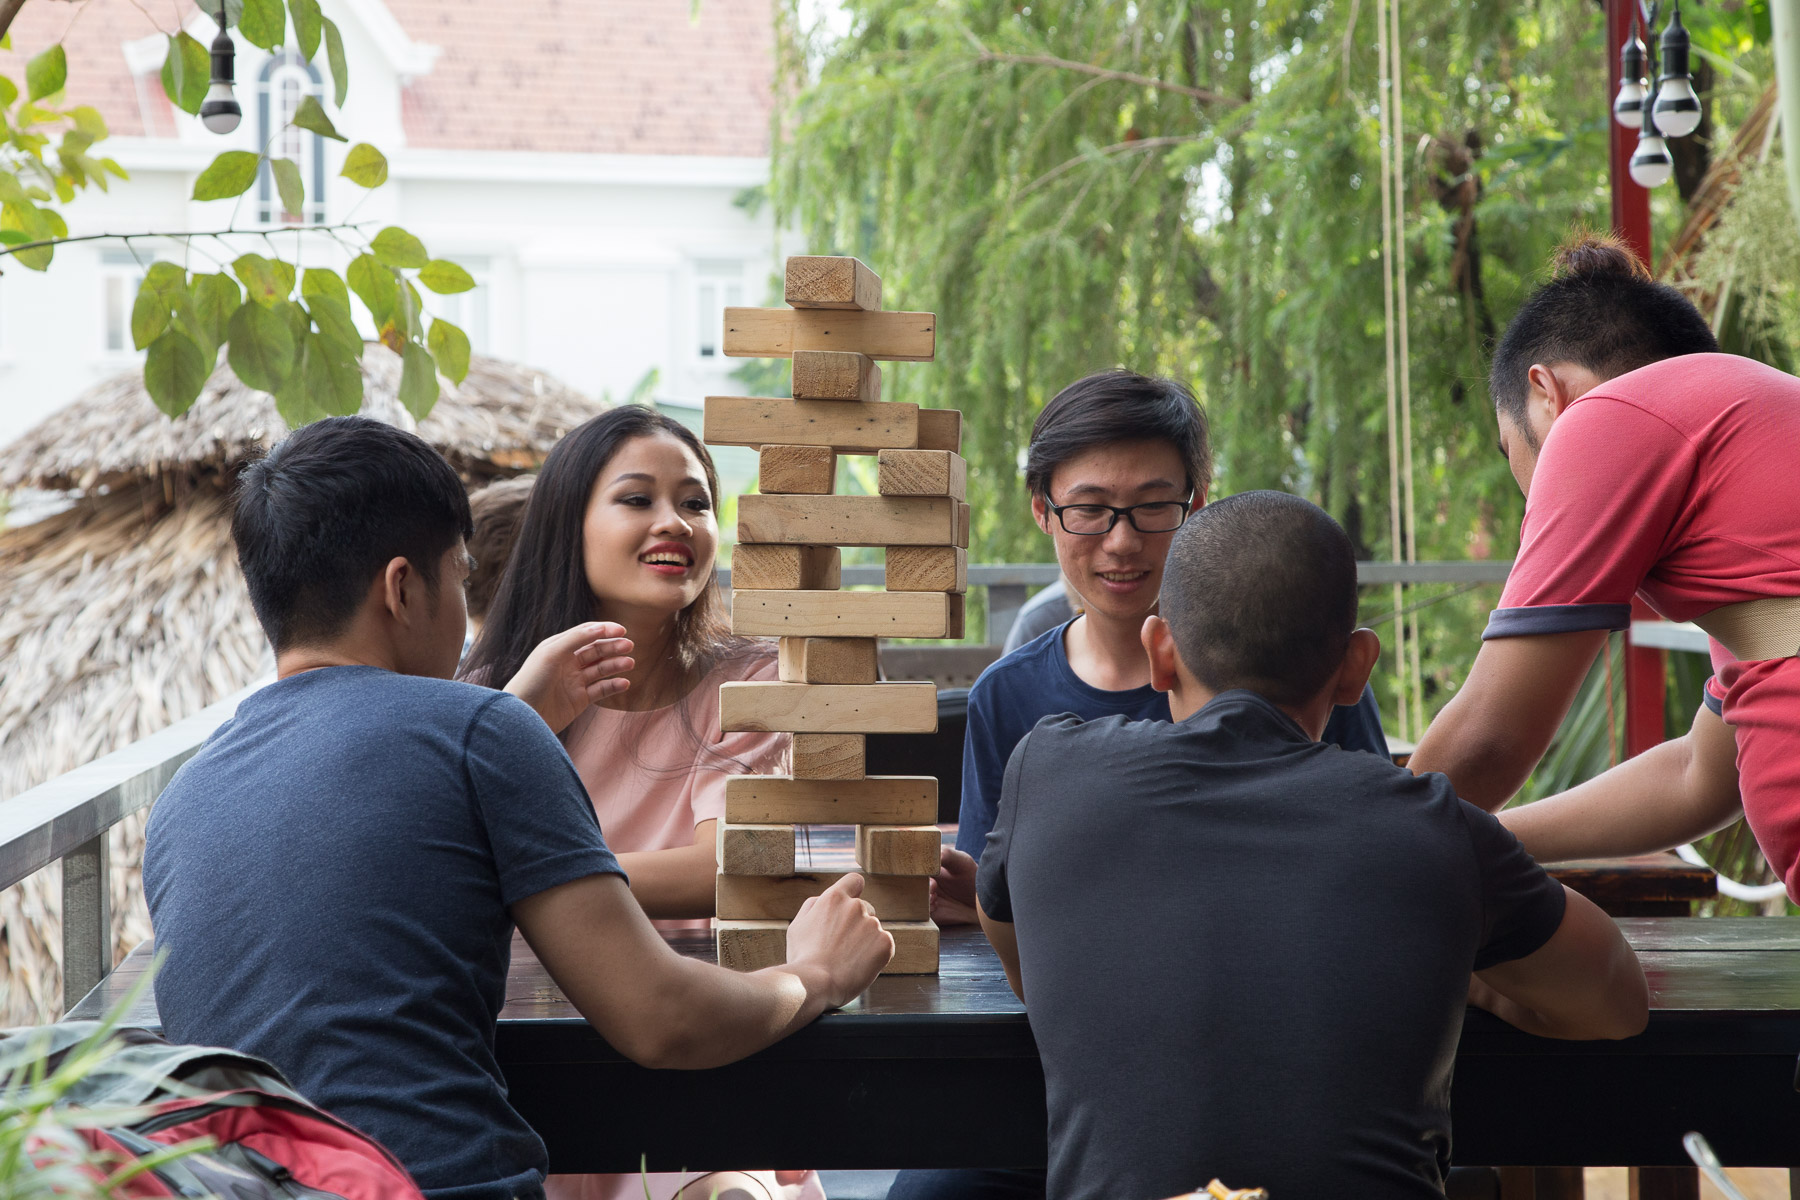 Giant Jenga fun at Saigon Outcast in District 2, Ho Chi Minh City.